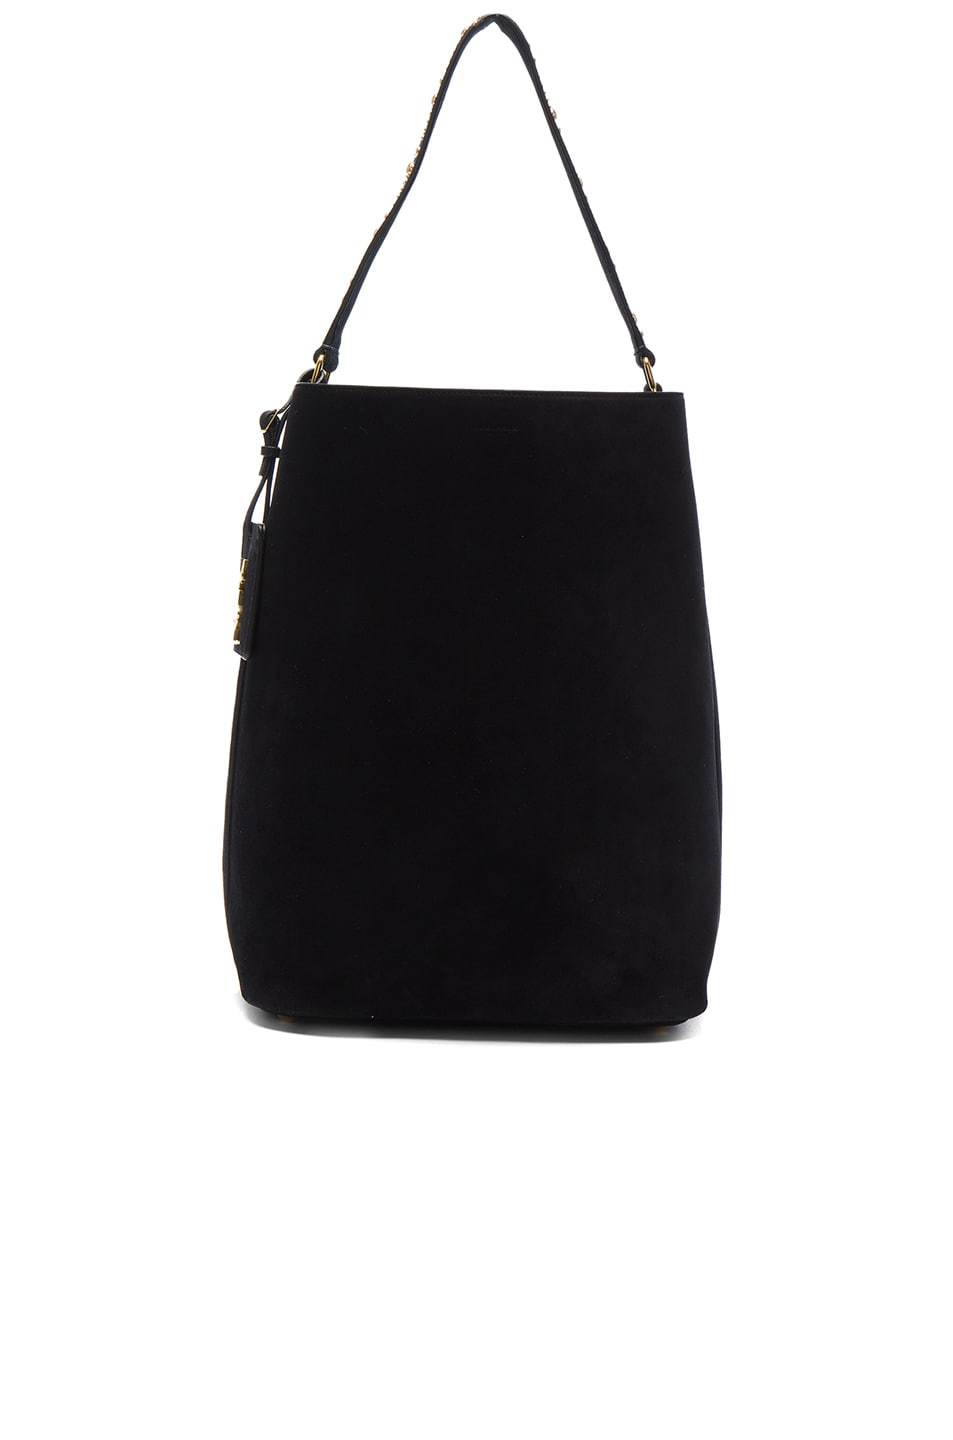 Image 1 of Saint Laurent Hobo Large Bag in Black